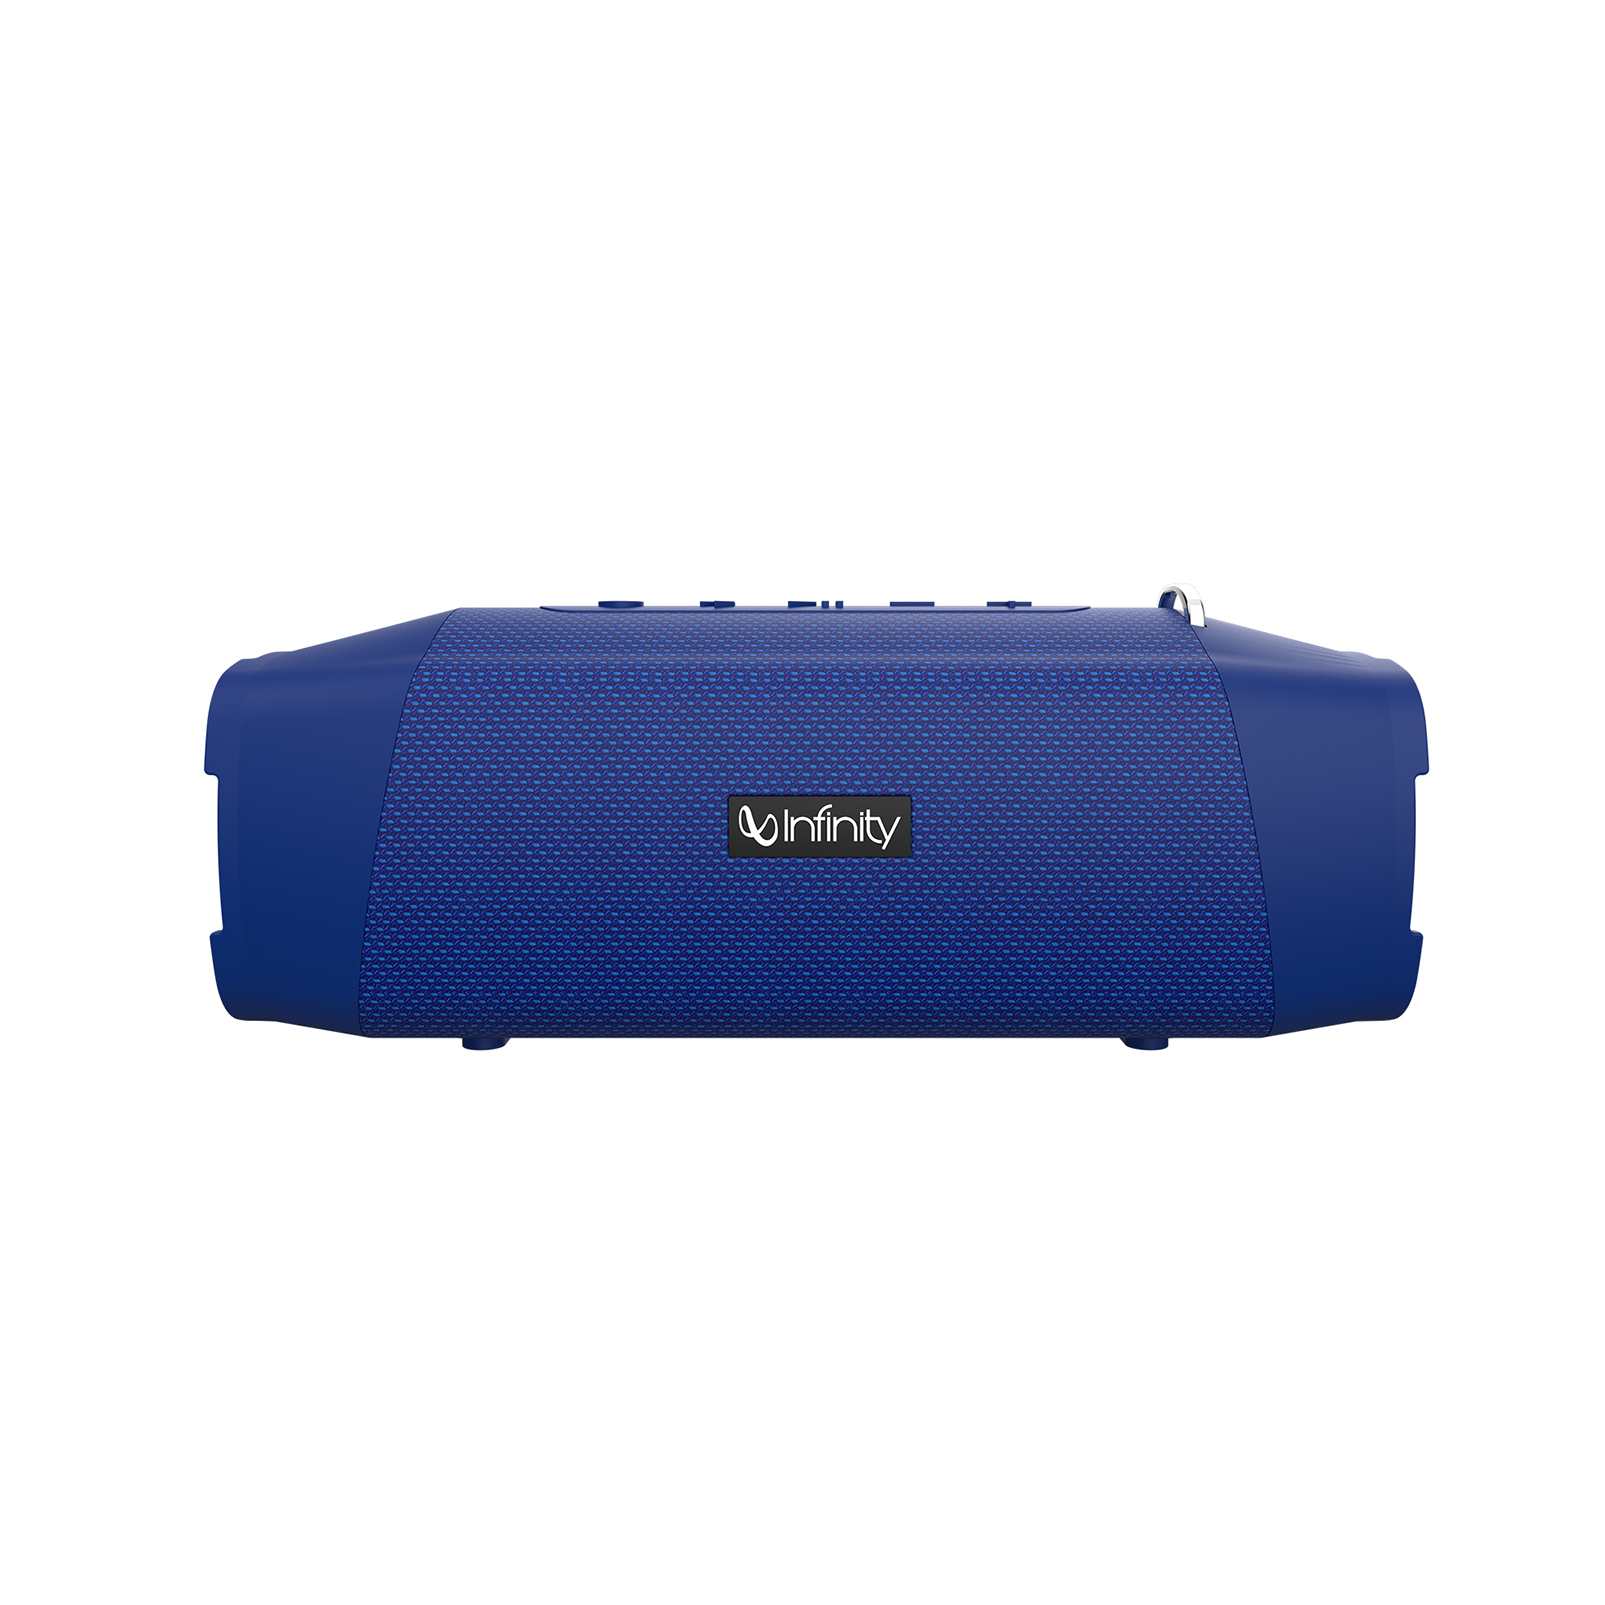 INFINITY FUZE 700 - Blue - Portable Wireless Speakers - Hero